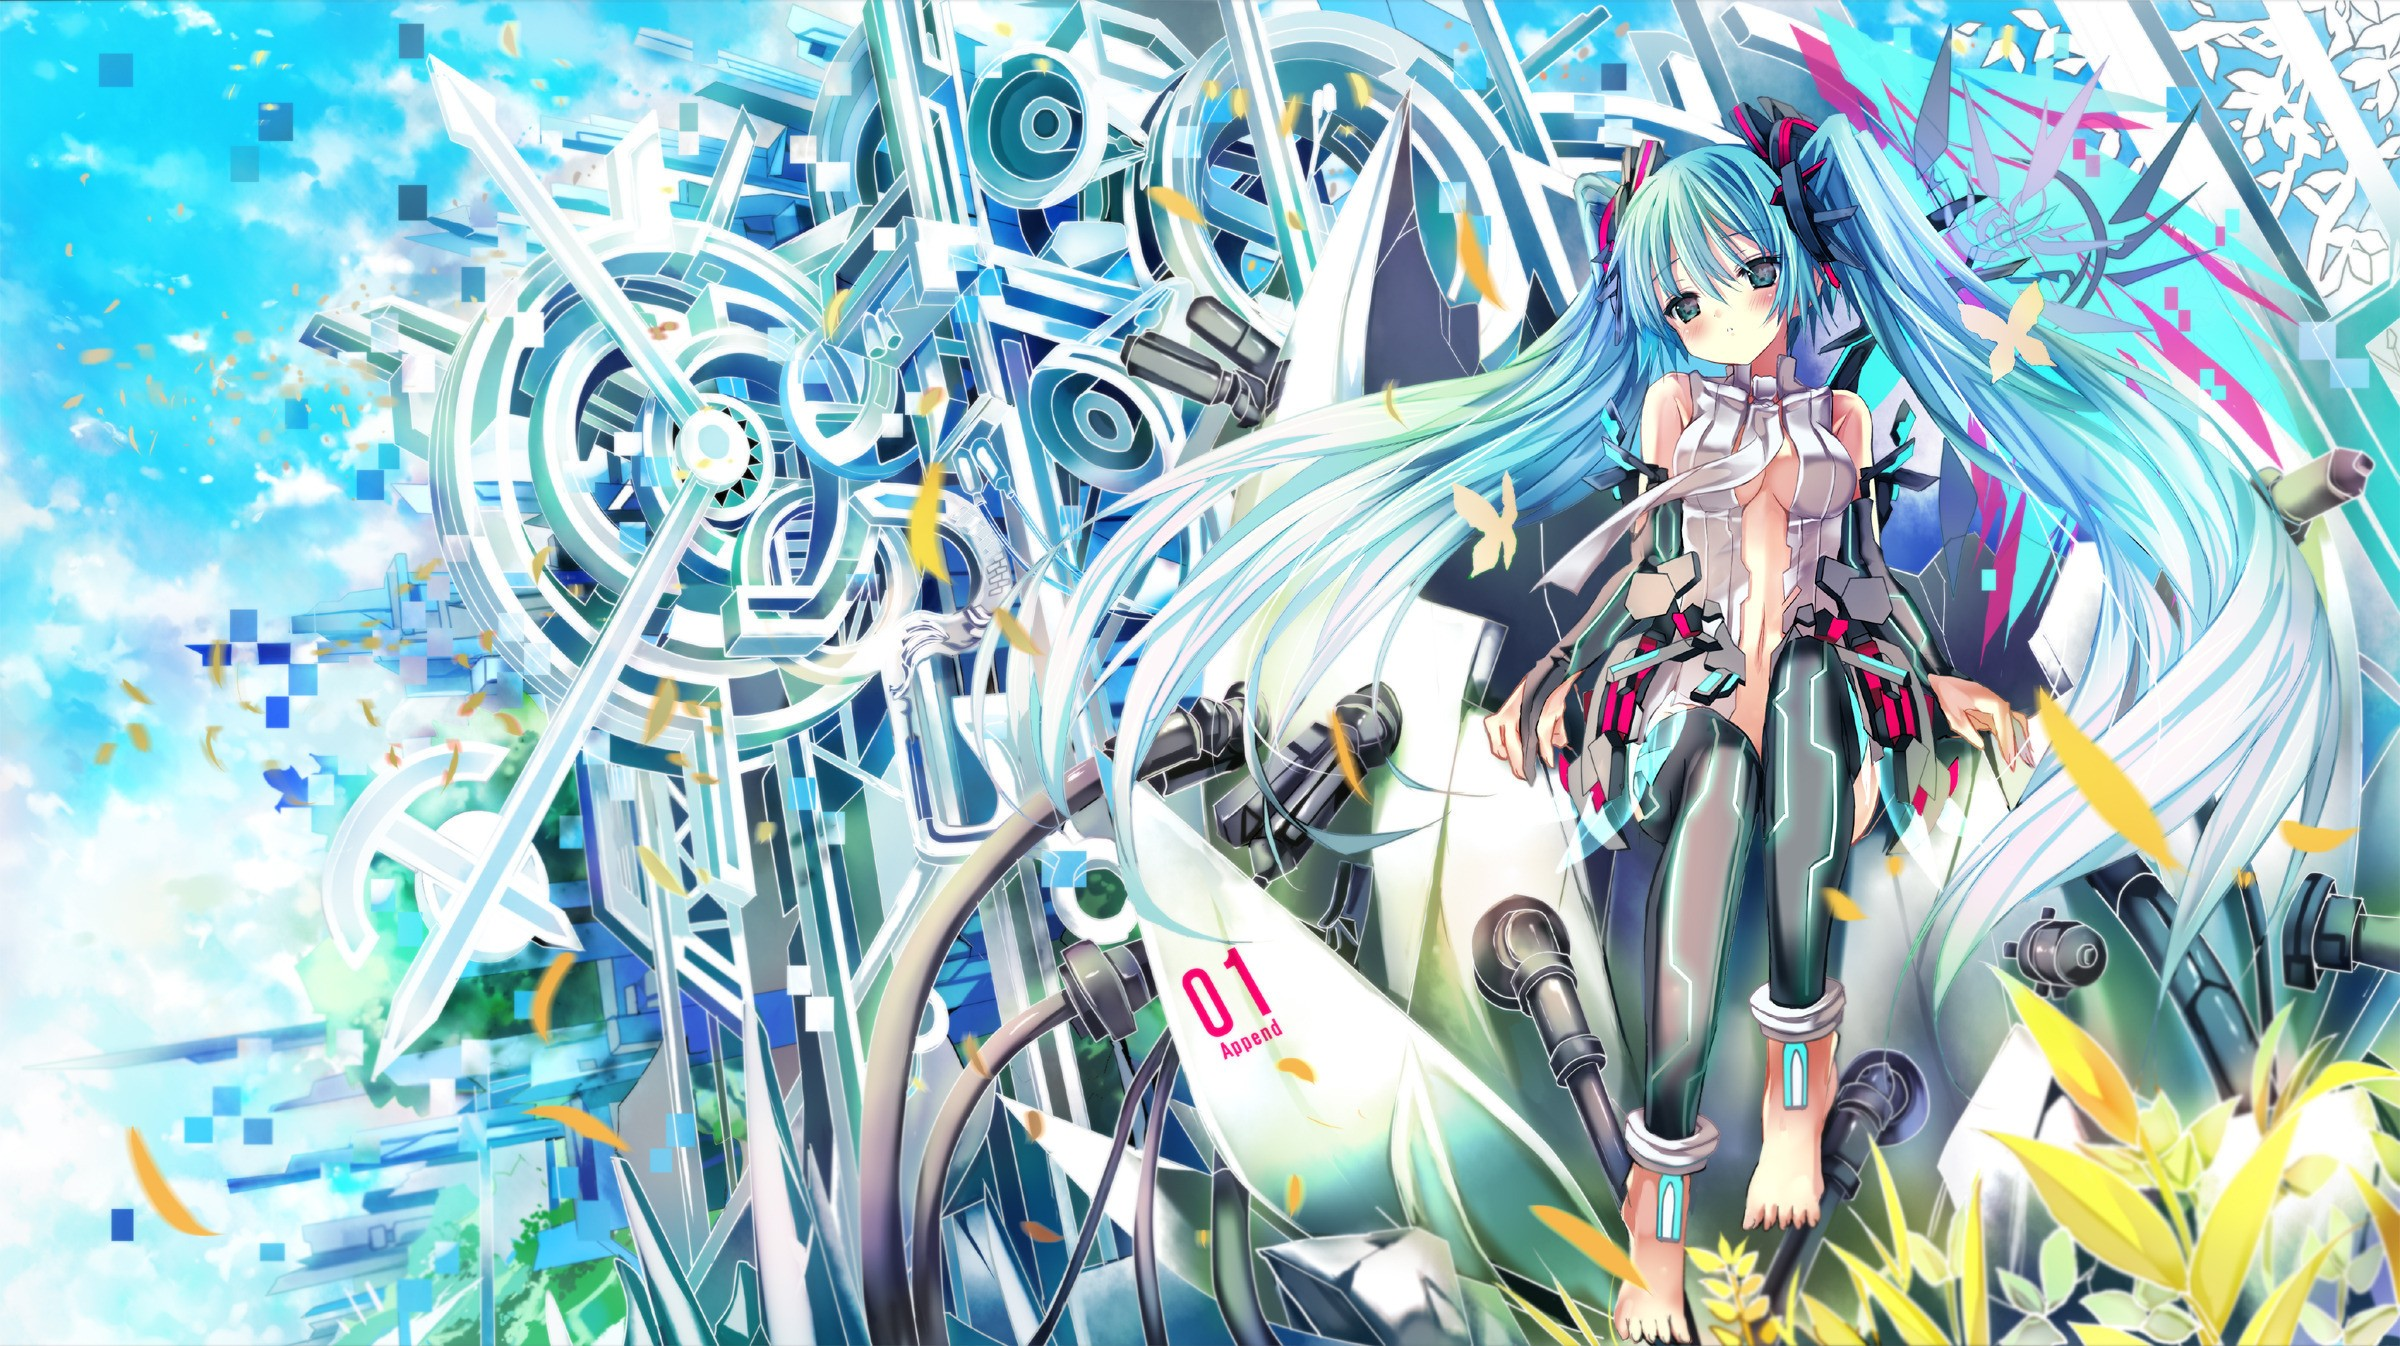 Music Vocaloid Wallpaper 2400x1346 Music Vocaloid Hatsune Miku 2400x1346